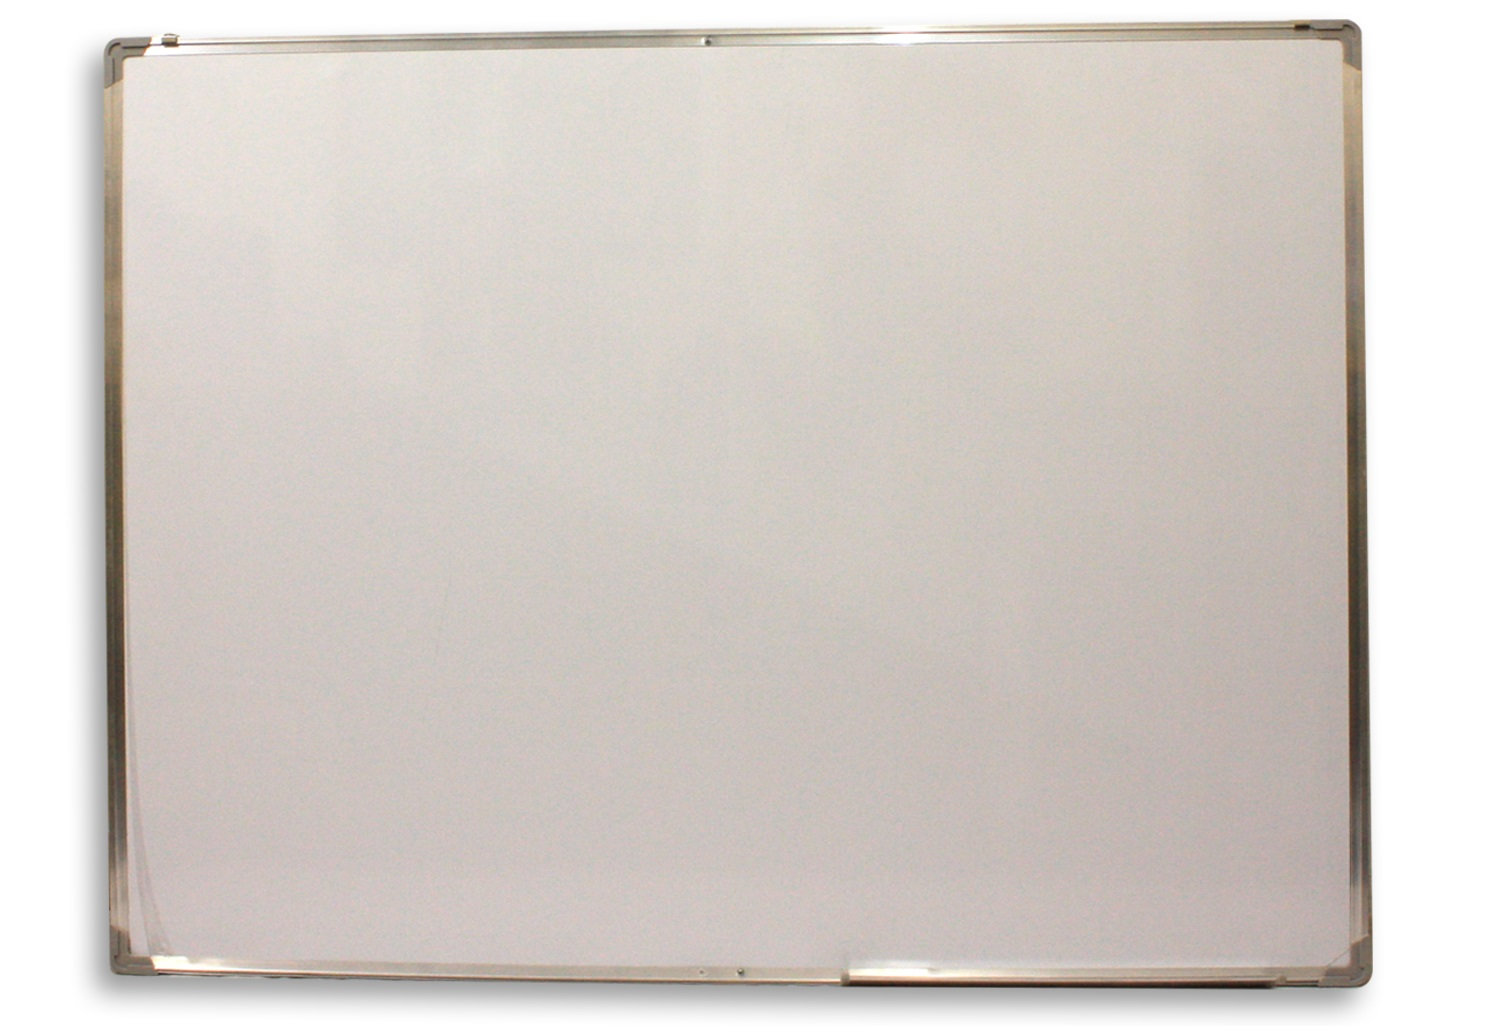 Maribelle Magnetic White Notice Board Dry Wipe Whiteboard